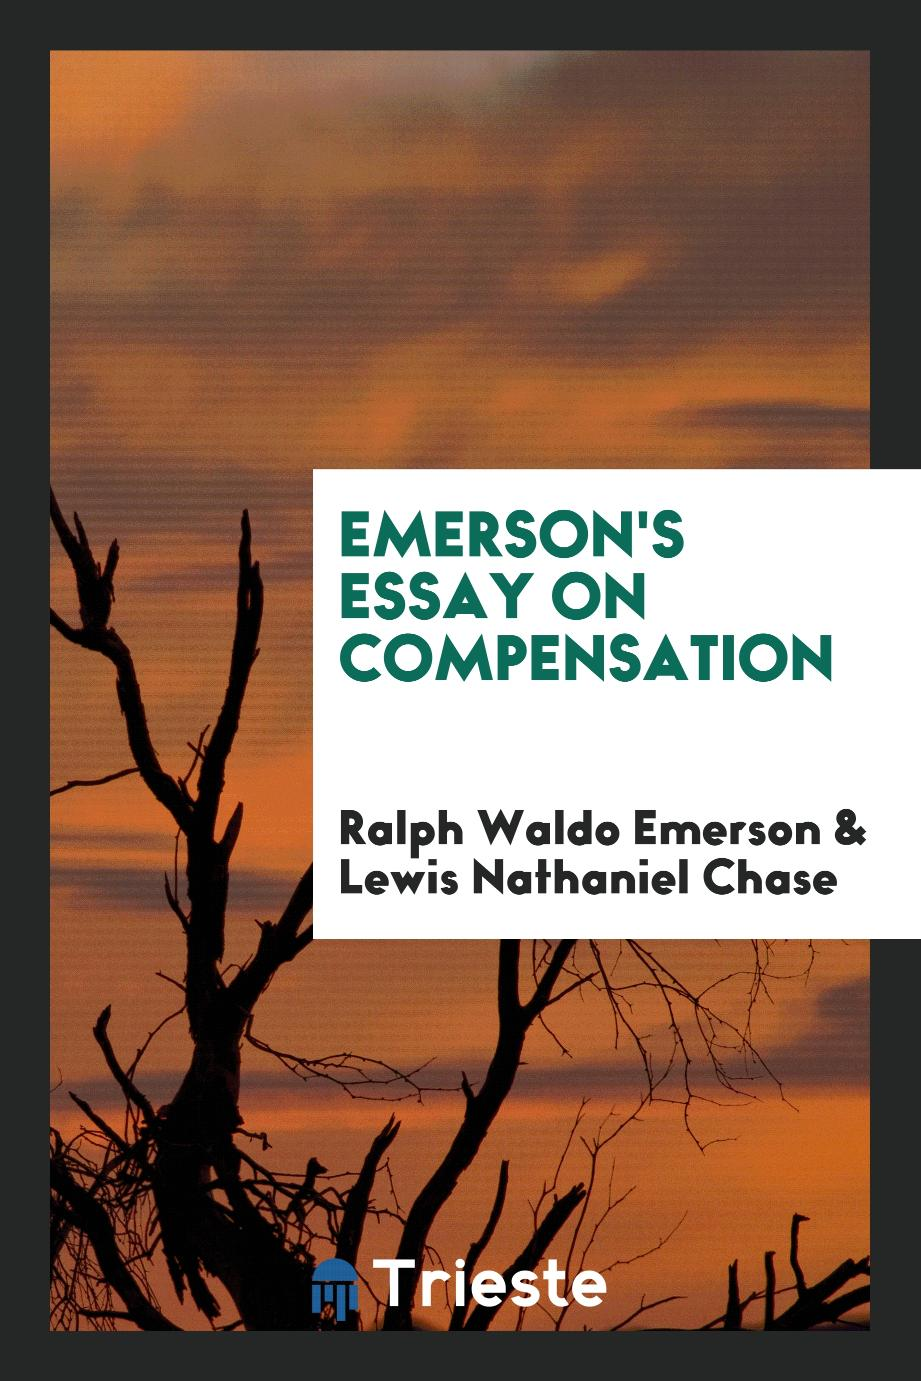 ralph emerson essay on compensation Ralph waldo emerson essay on compensation - write a quick custom term paper with our assistance and make your tutors amazed essays & dissertations written by high class writers professional researches at moderate prices available here will turn your education into delight.